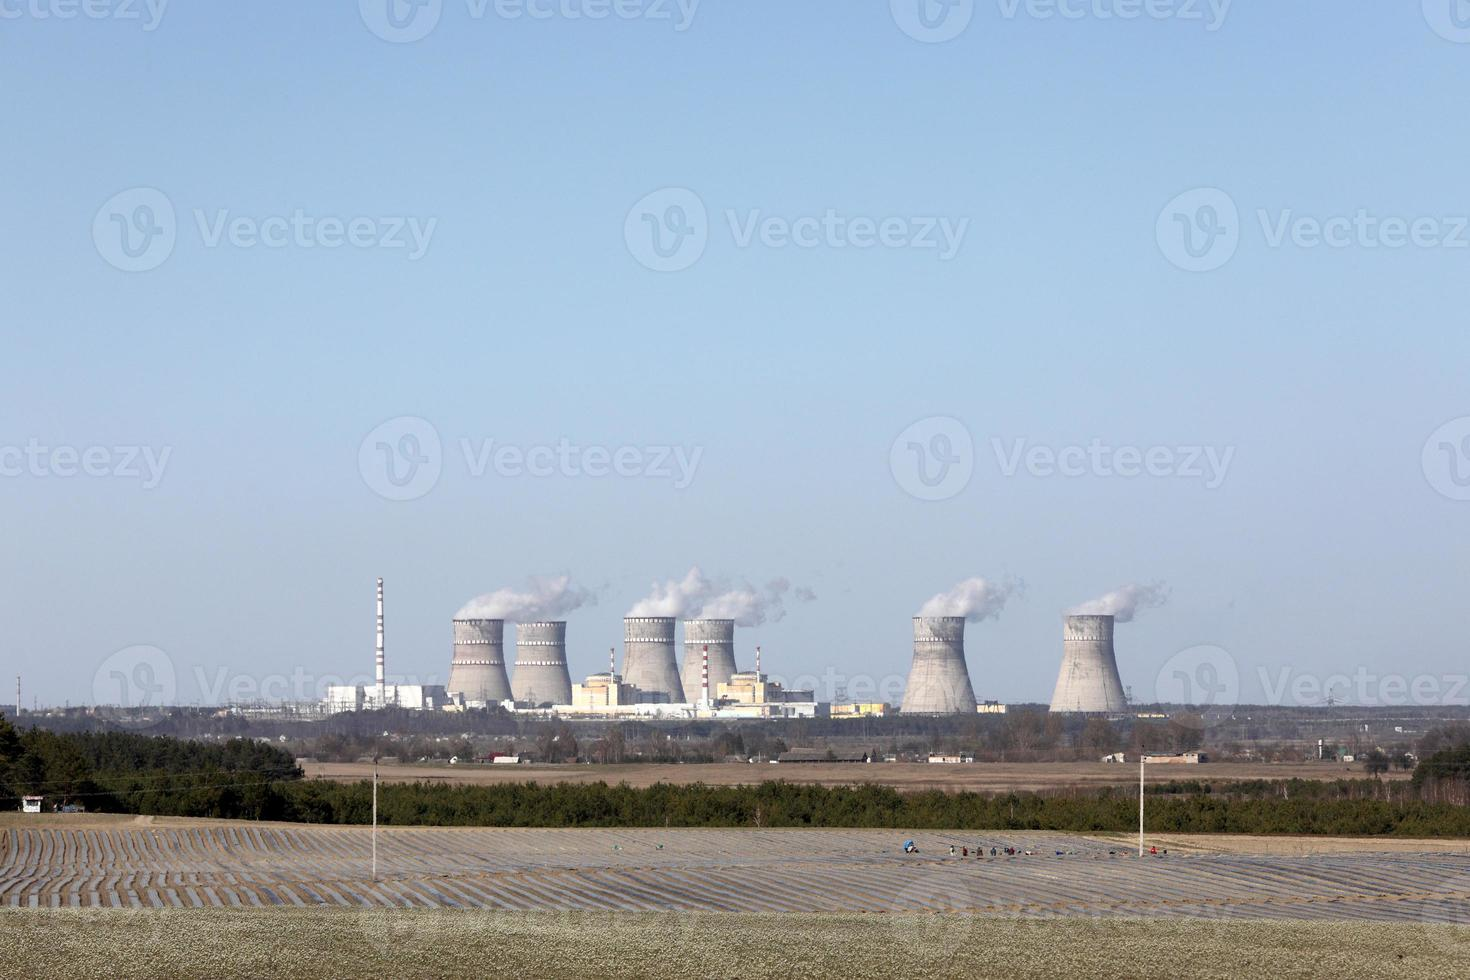 View of a nuclear power plant. View of smoking chimneys of a nuclear power plant, power lines, and forest, under blue sky with white clouds. photo